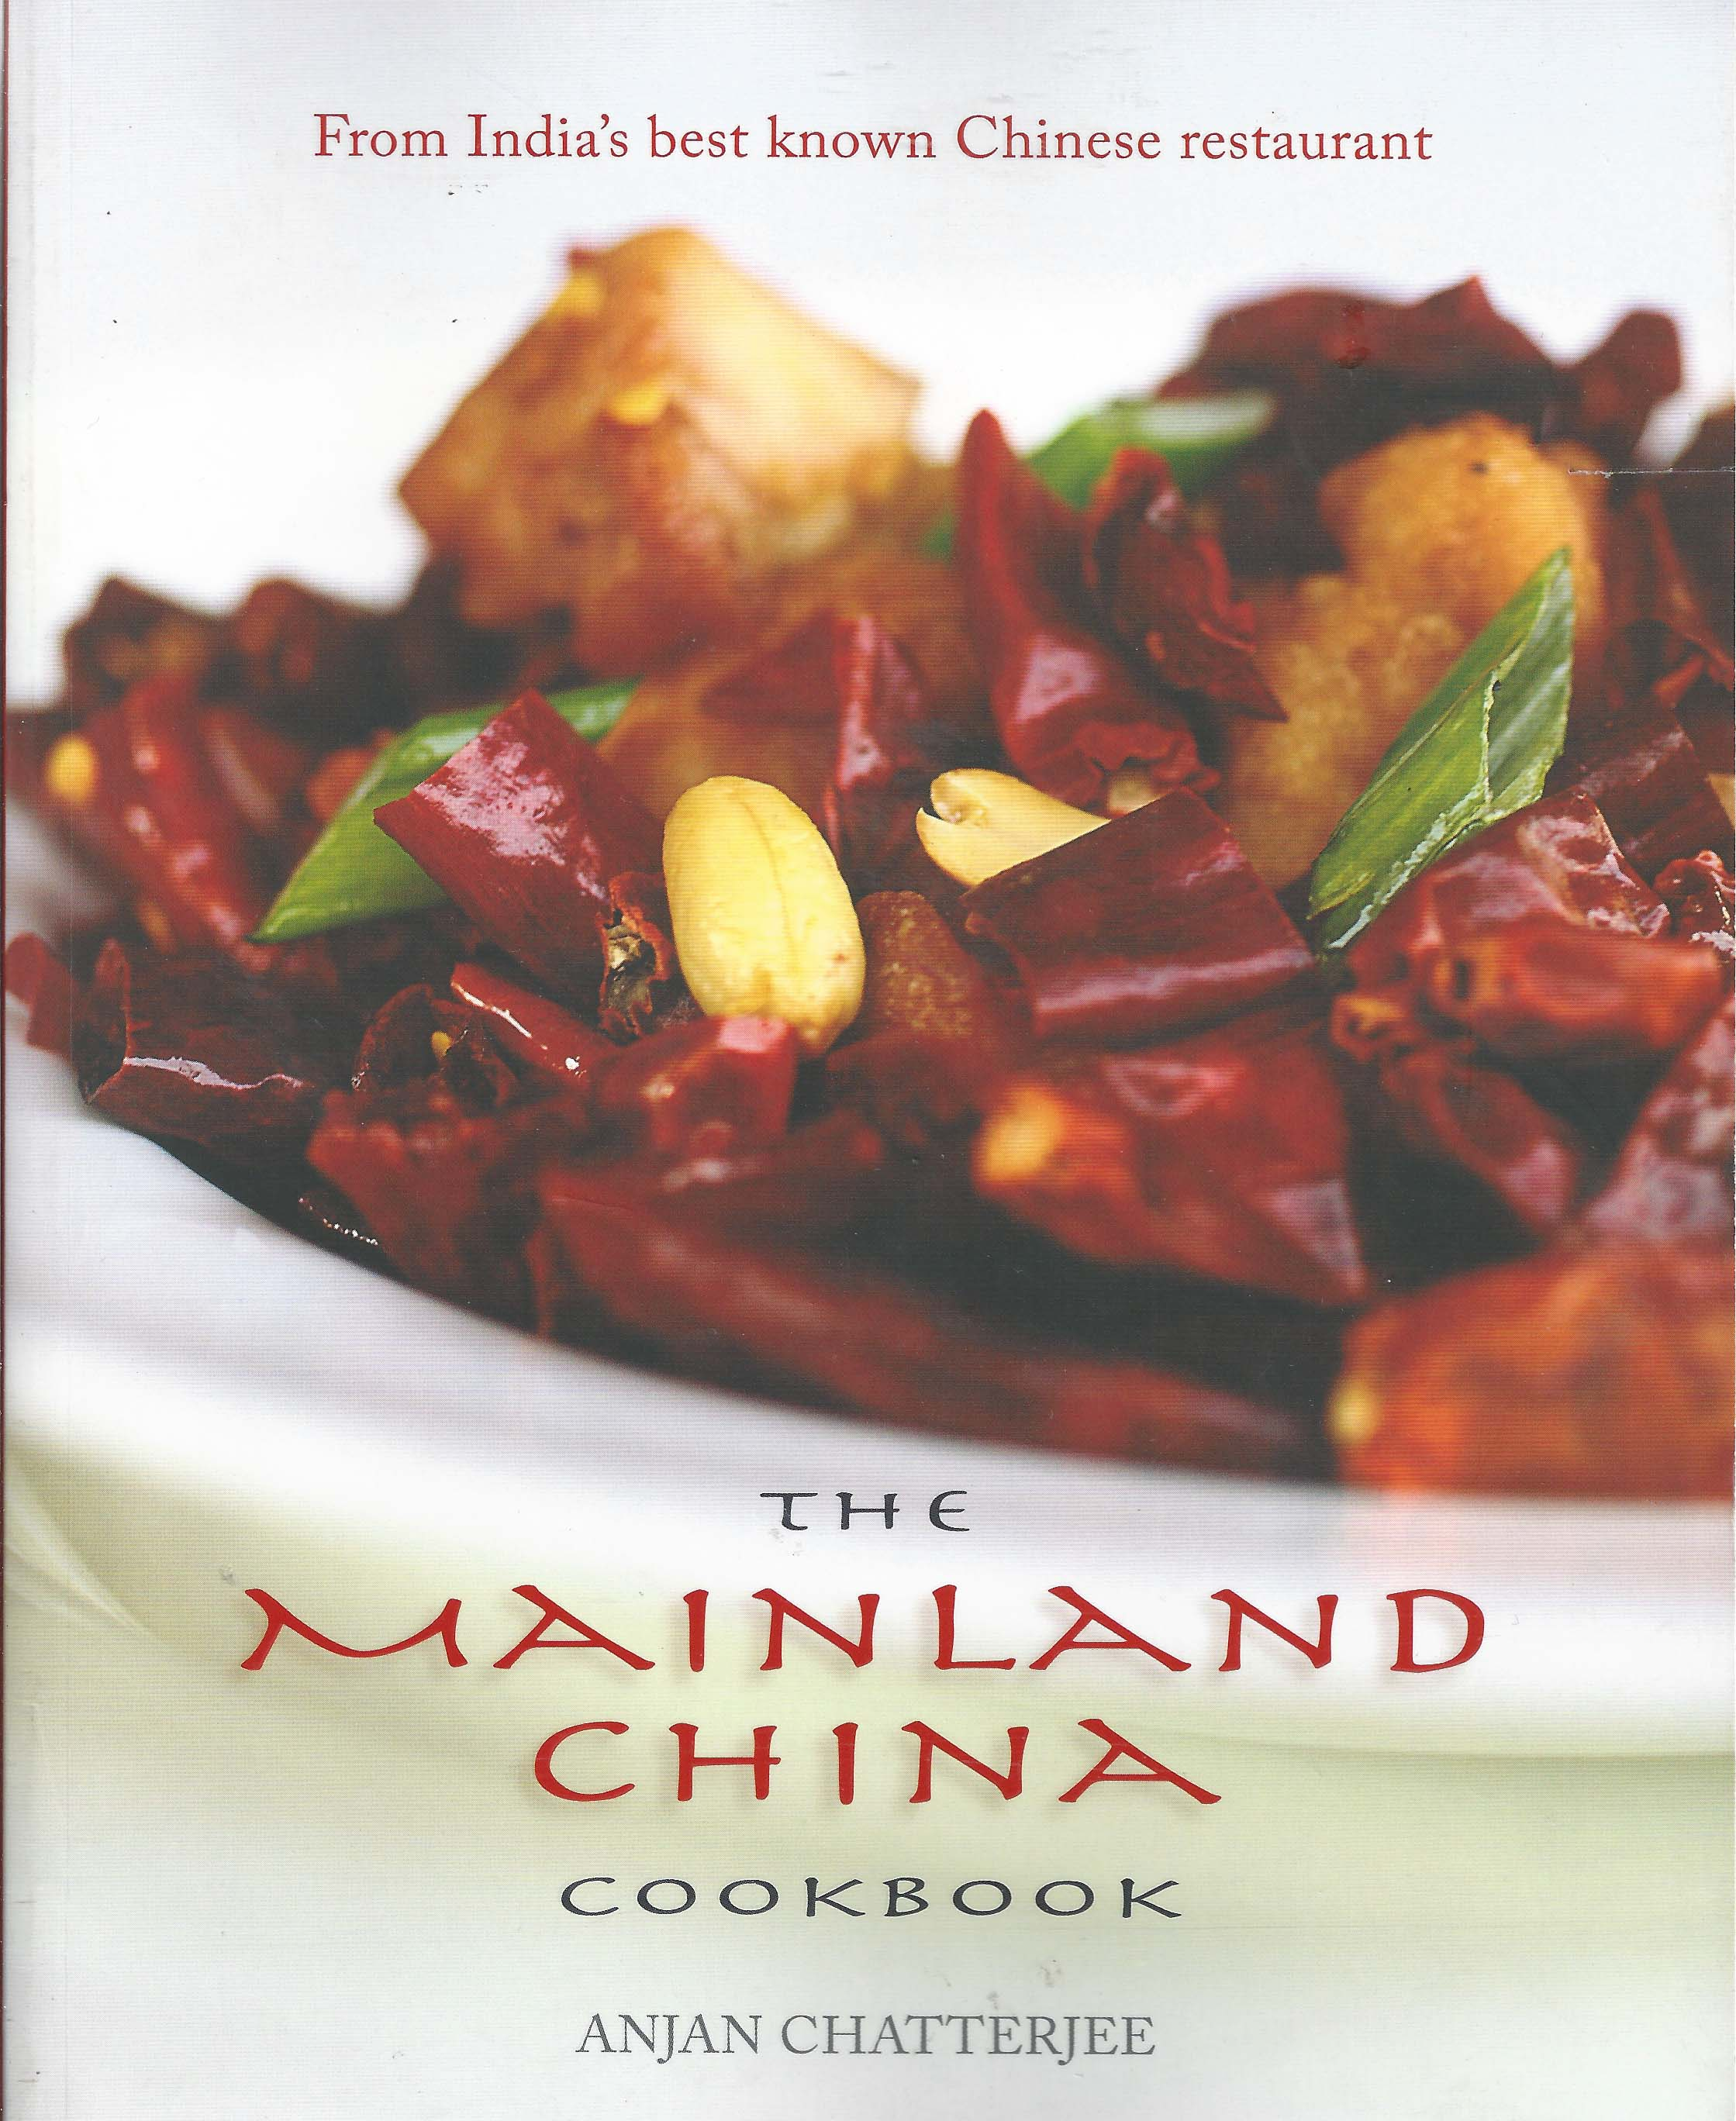 Mainland china cookbook by anjan chatterjee forumfinder Choice Image